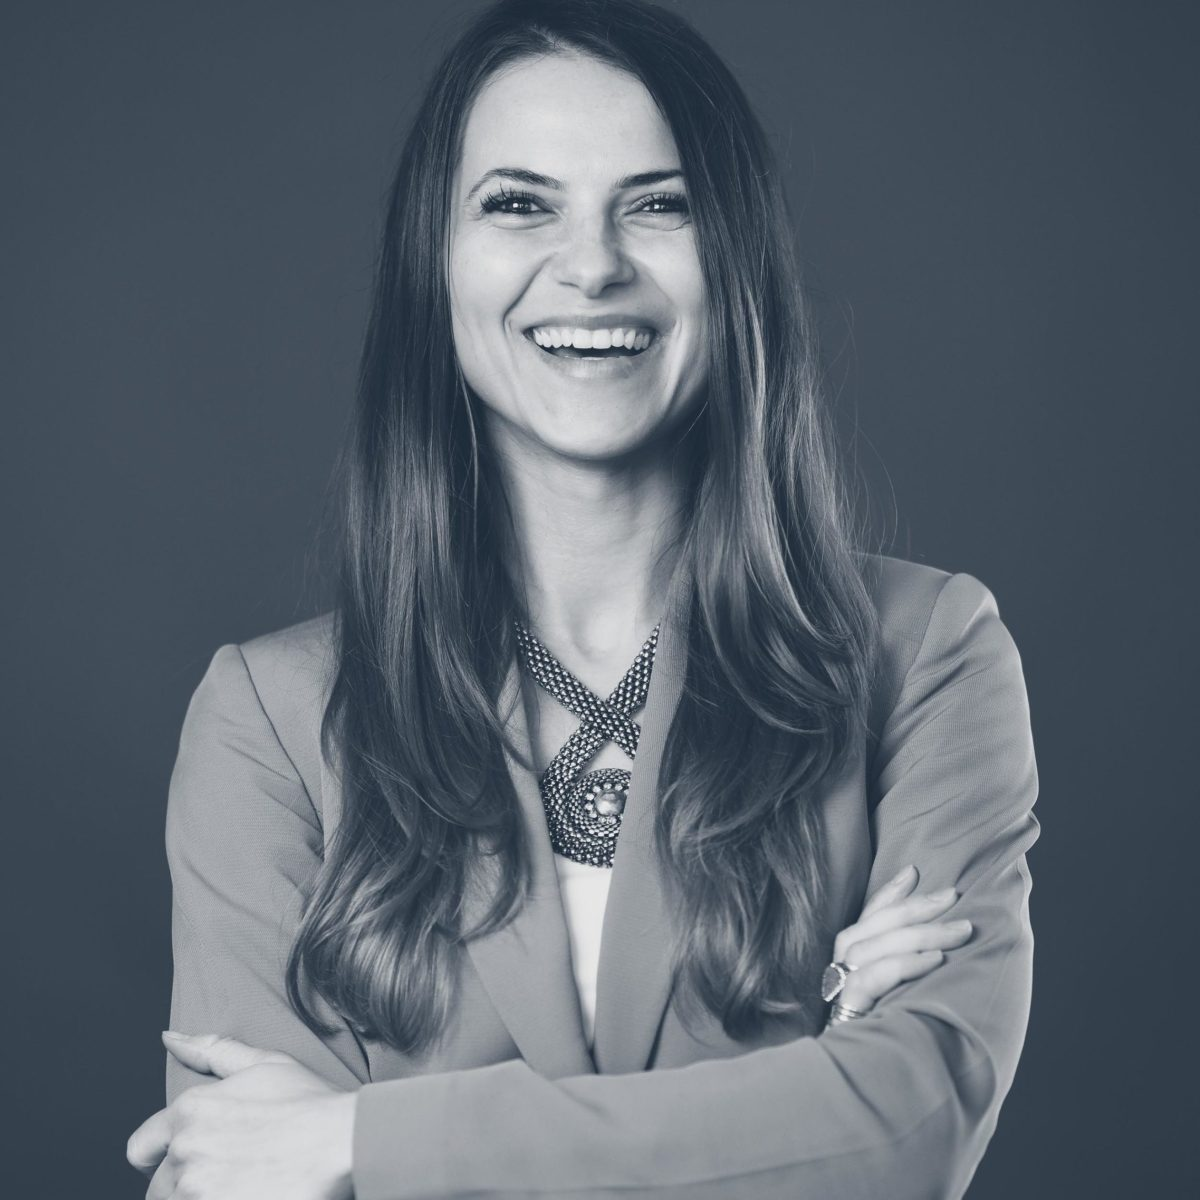 Ruxandra Radulescu, CEO of Within International